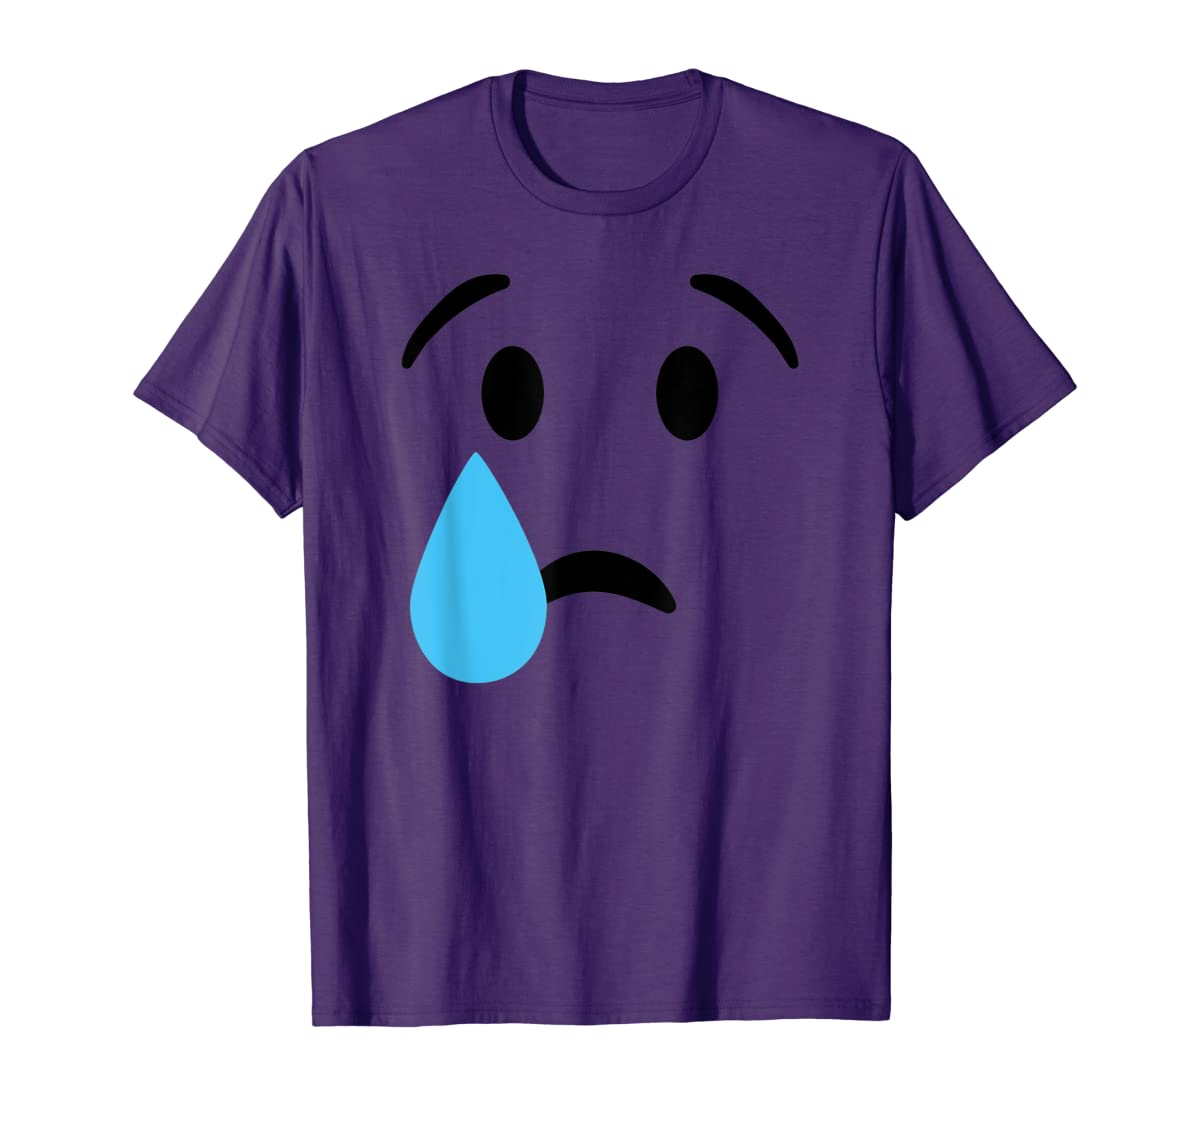 Sad Crying Tear Eyes Face Emojis Emoticon Halloween Costume T-Shirt-Men's T-Shirt-Purple